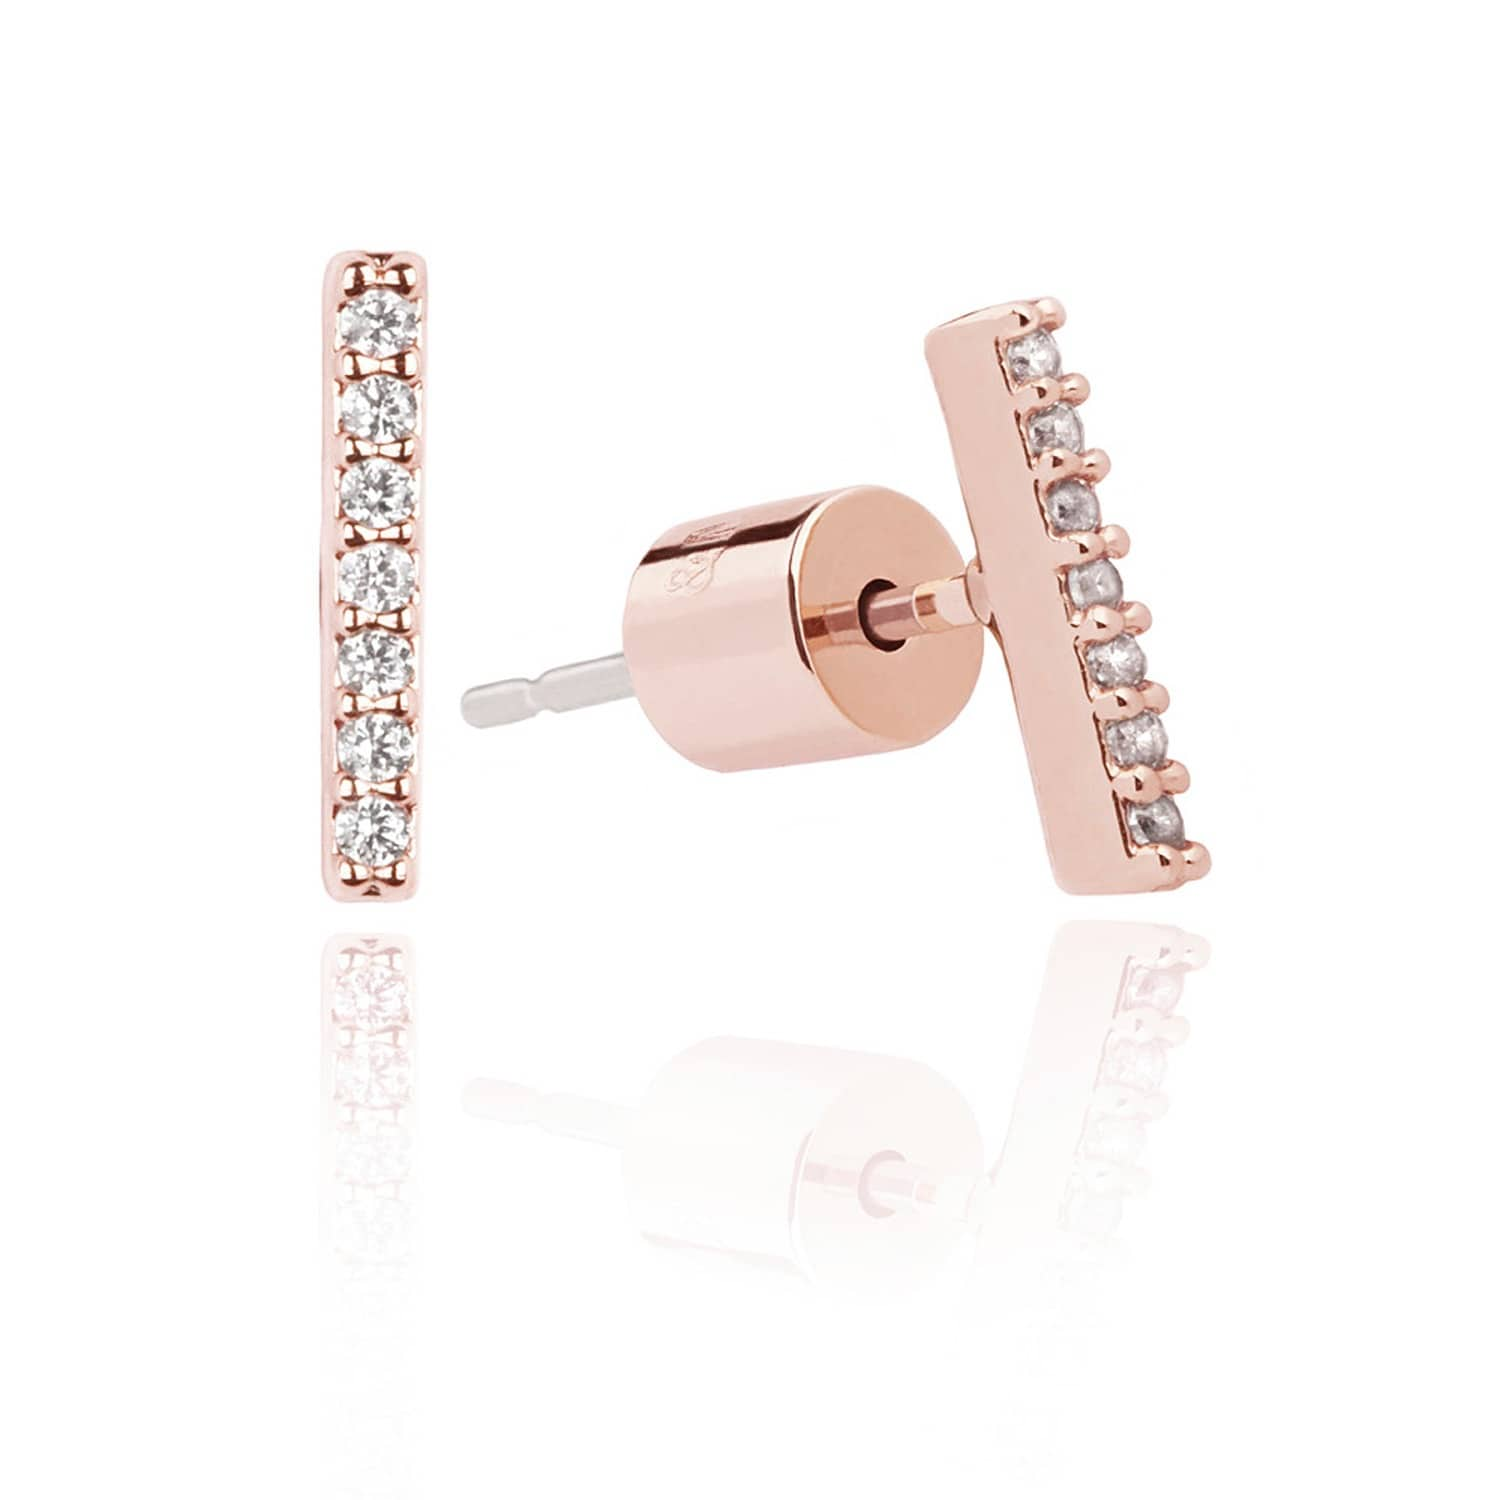 0a2b4e646 Hold On Small Bar Earrings in Rose Gold | Astrid & Miyu | Wolf & Badger